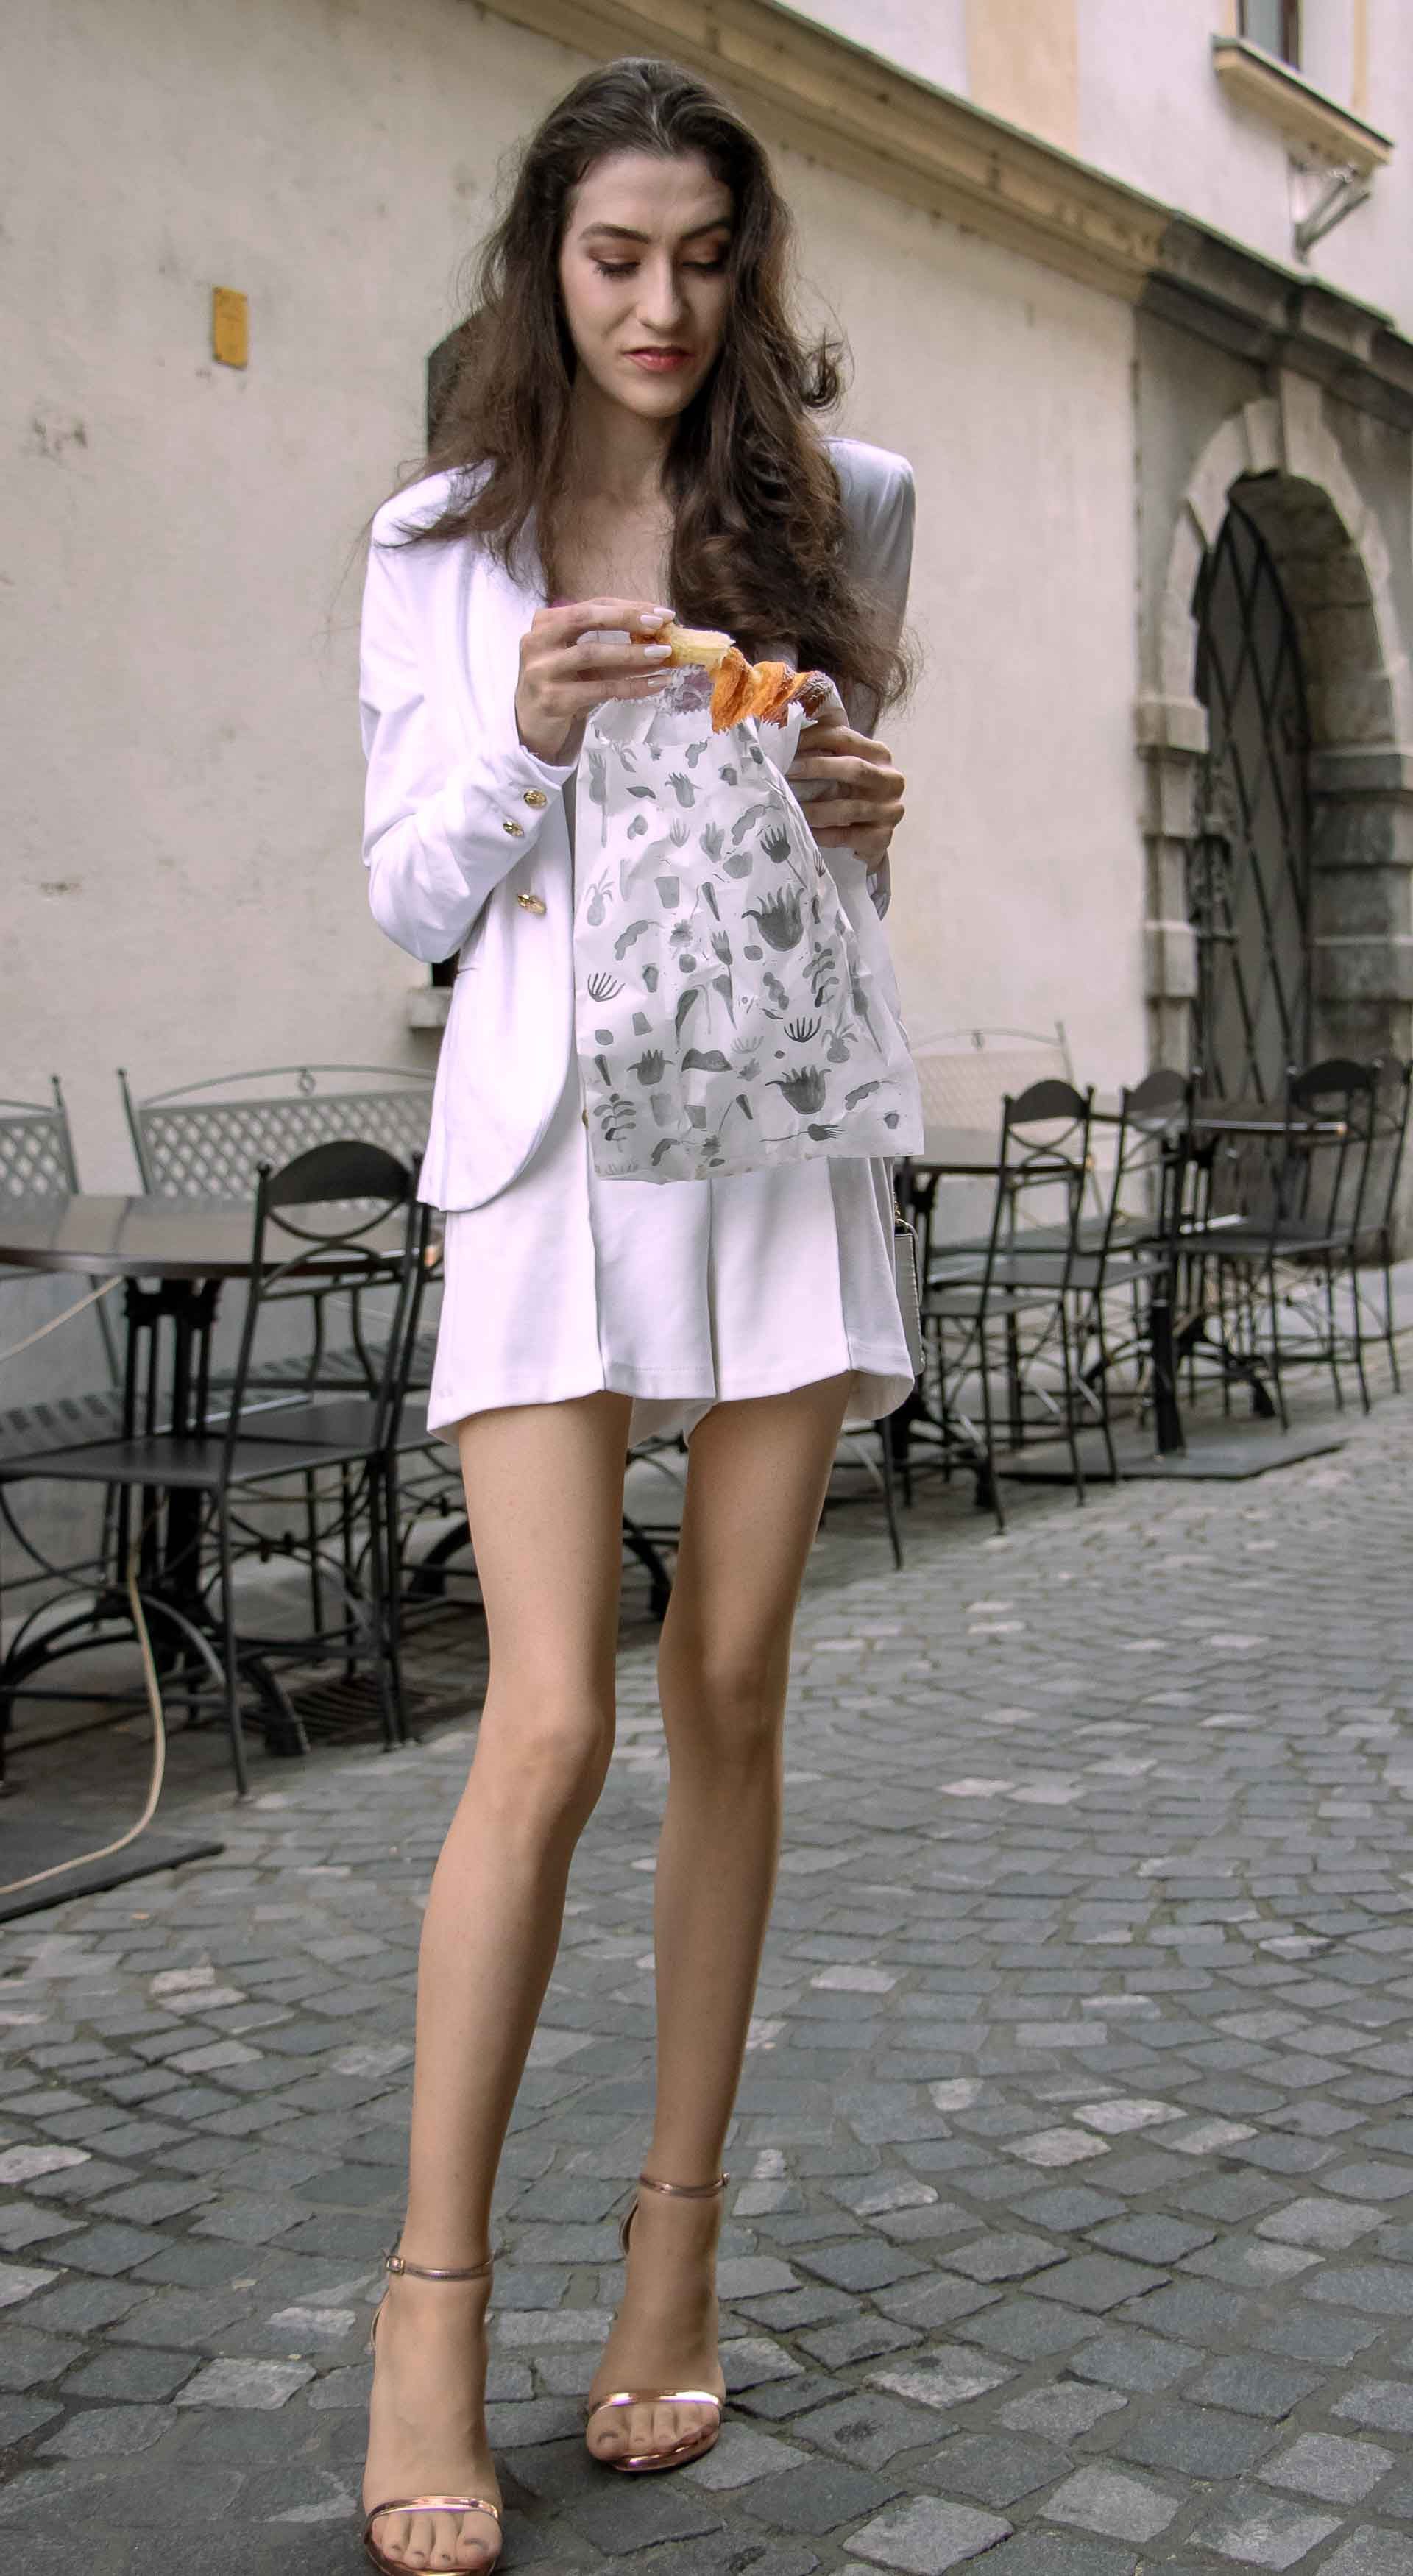 Beautiful Slovenian Fashion Blogger Veronika Lipar of Brunette from Wall wearing all in white suit, white blazer, white tailored shorts, Stuart Weitzman high shine metallic nudist song sandals, shoulder bag while eating a croissant on the street in the morning after nuit blanche